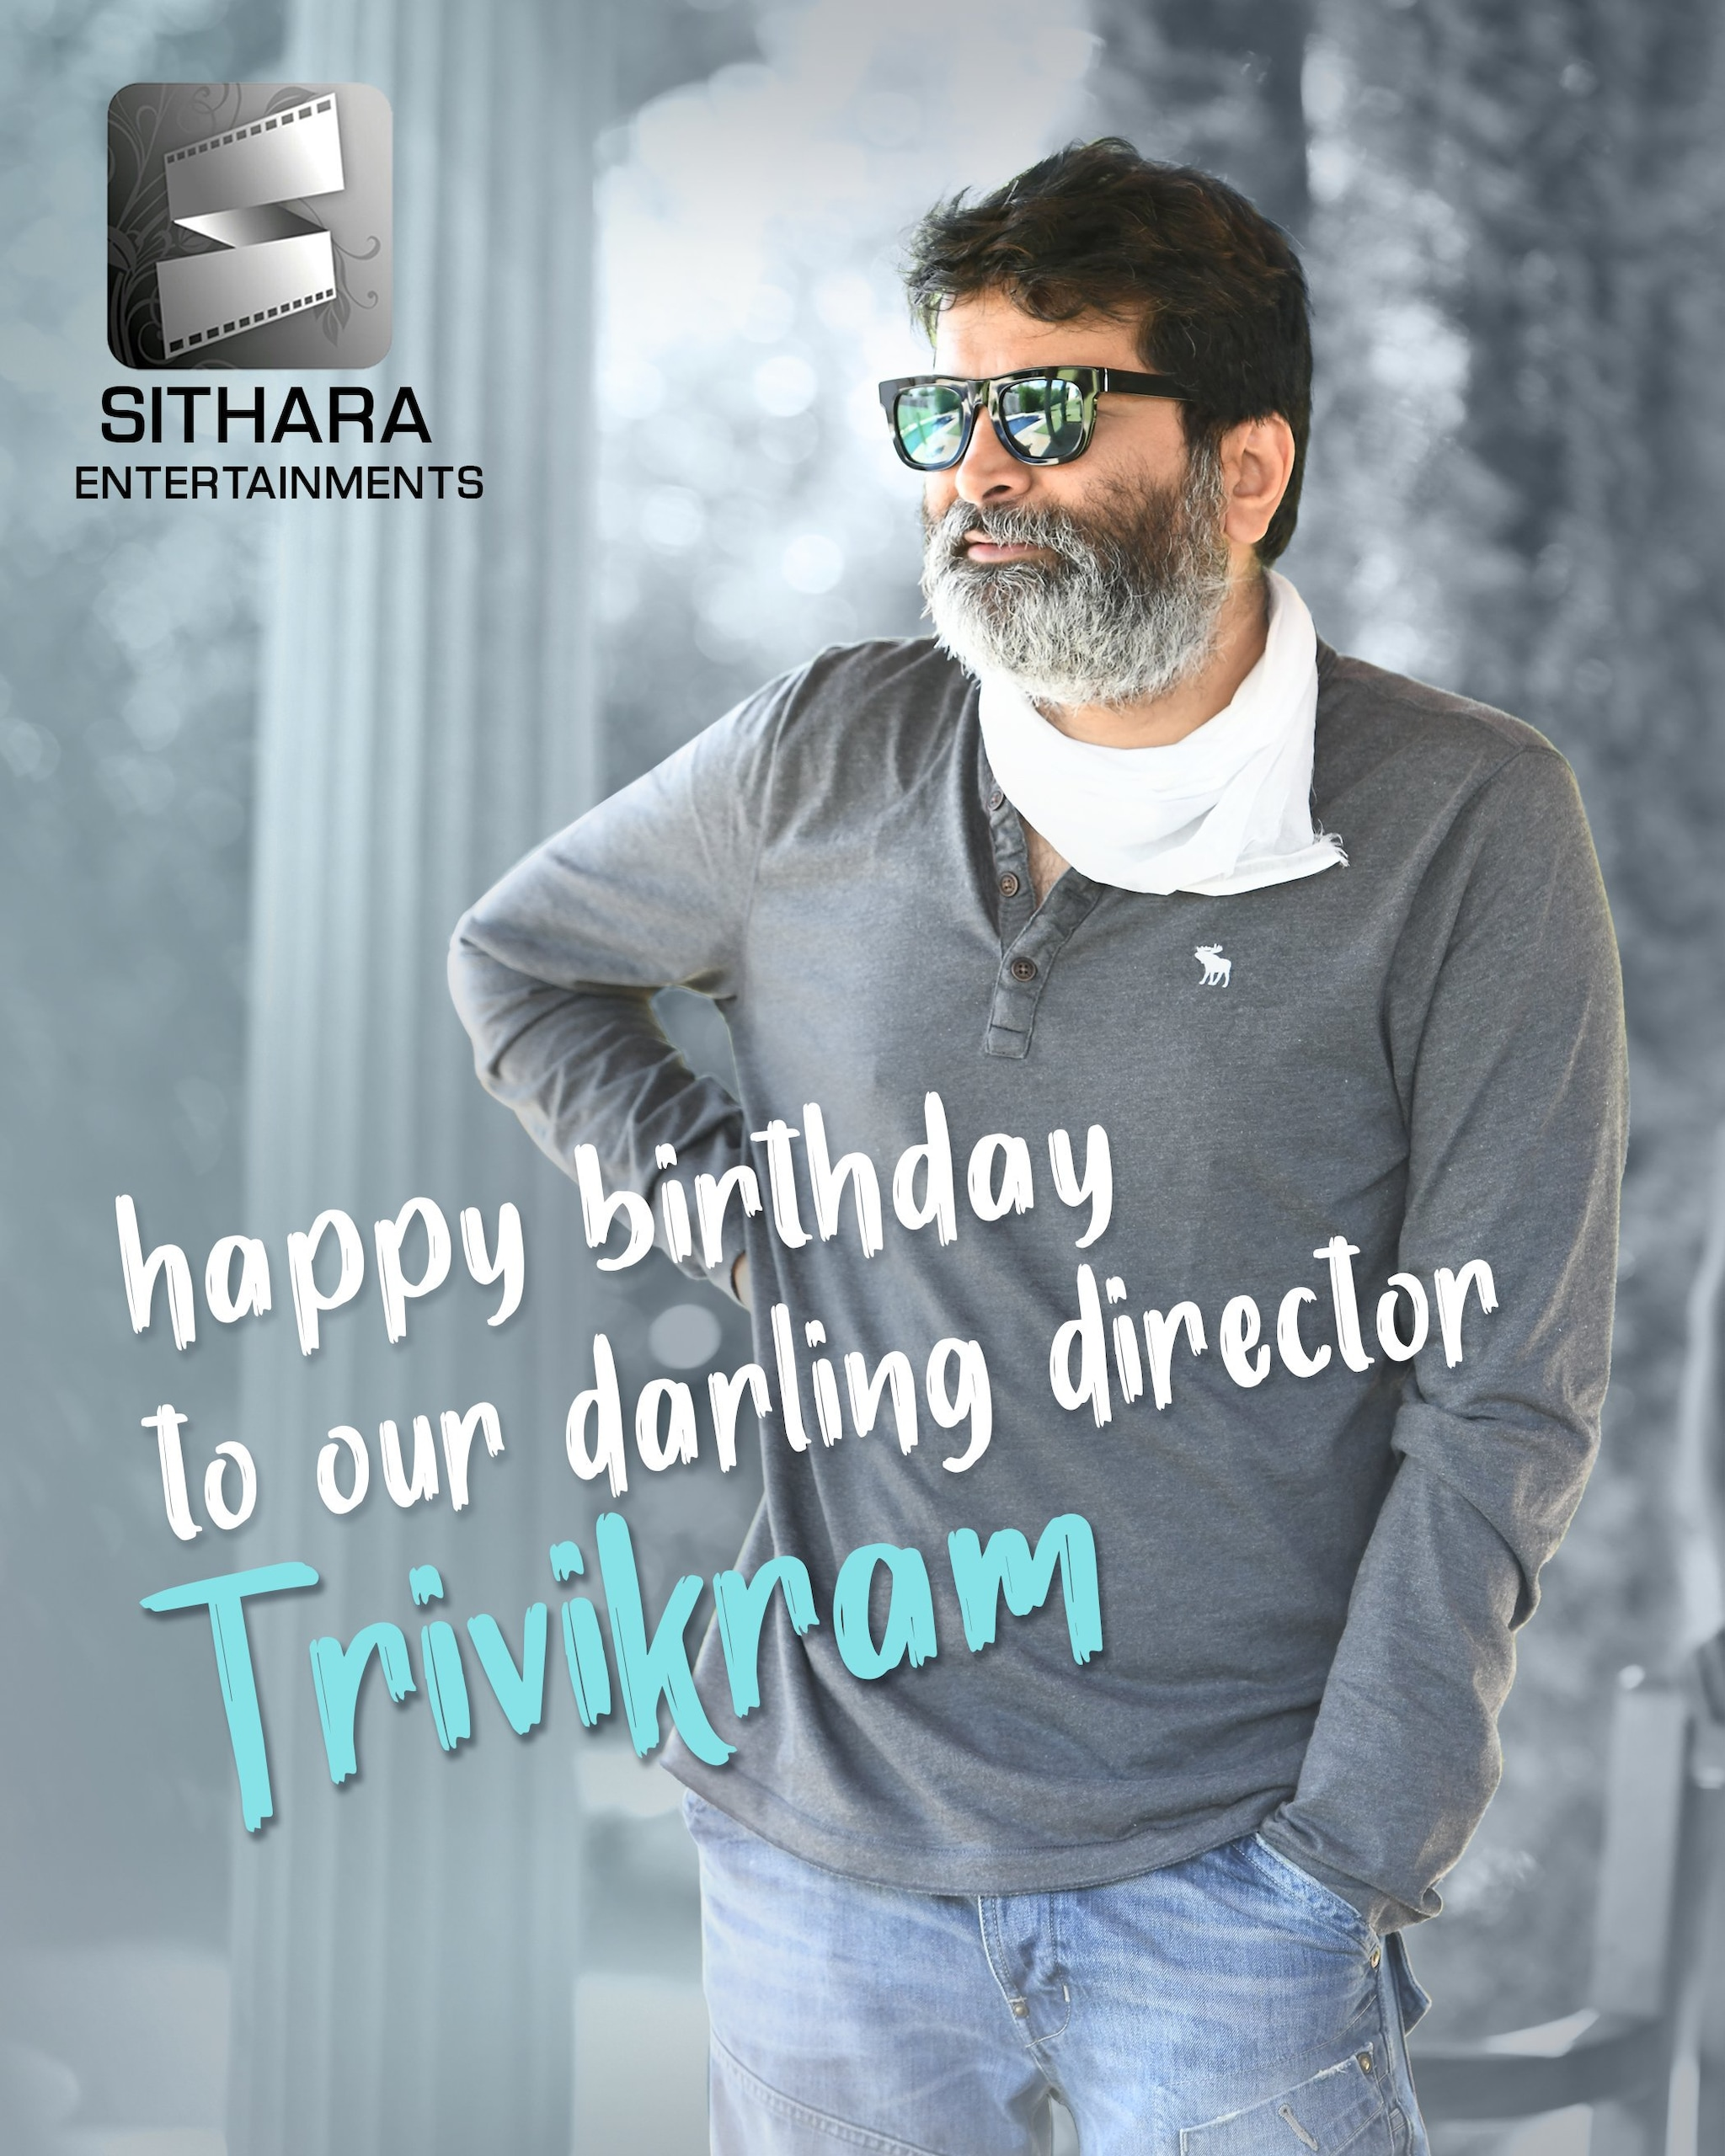 happy birthday tollywood top director trivikram srinivas,trivikram srinivas,trivikram movies,happy birthday trivikram,trivikram,trivikram birthday special,trivikram dialogues,trivikram srinivas birthday special,trivikram birthday,happy birthday,trivikram about pawan kalyan,trivikram punch dialogues,trivikram srinivas birthday special video,trivikram srinivas birthday special wishes,trivikram speech,trivikram best dialogues,trivikram srinivas speech,pawan kalyan birthday,trivikram srinivas twitter,trivikram srinivas instagram,trivikram srinivas facebook,trivikram ntr pawan kalyan mahesh babu,trivikram allu arjun,trivikram ala vaikunthapurramloo,tollywood,telugu cinema,tirivikram srinivas birthday,trivikram srinivas,trivikram birthday,telugu cinema,trivikram pawan kalyan,trivikram allu arjun,త్రివిక్రమ్ శ్రీనివాస్,త్రివిక్రమ్ శ్రీనివాస్ బర్త్ డే,త్రివిక్రమ్ శ్రీనివాస్ పవన్ కళ్యాణ్,త్రివిక్రమ్ అల్లు అర్జున్,త్రివిక్రమ్ పుట్టినరోజు,త్రివిక్రమ్ శ్రీనివాస్,త్రివిక్రమ్ శ్రీనివాస్ బర్త్ డే,అల వైకుంఠపురములో